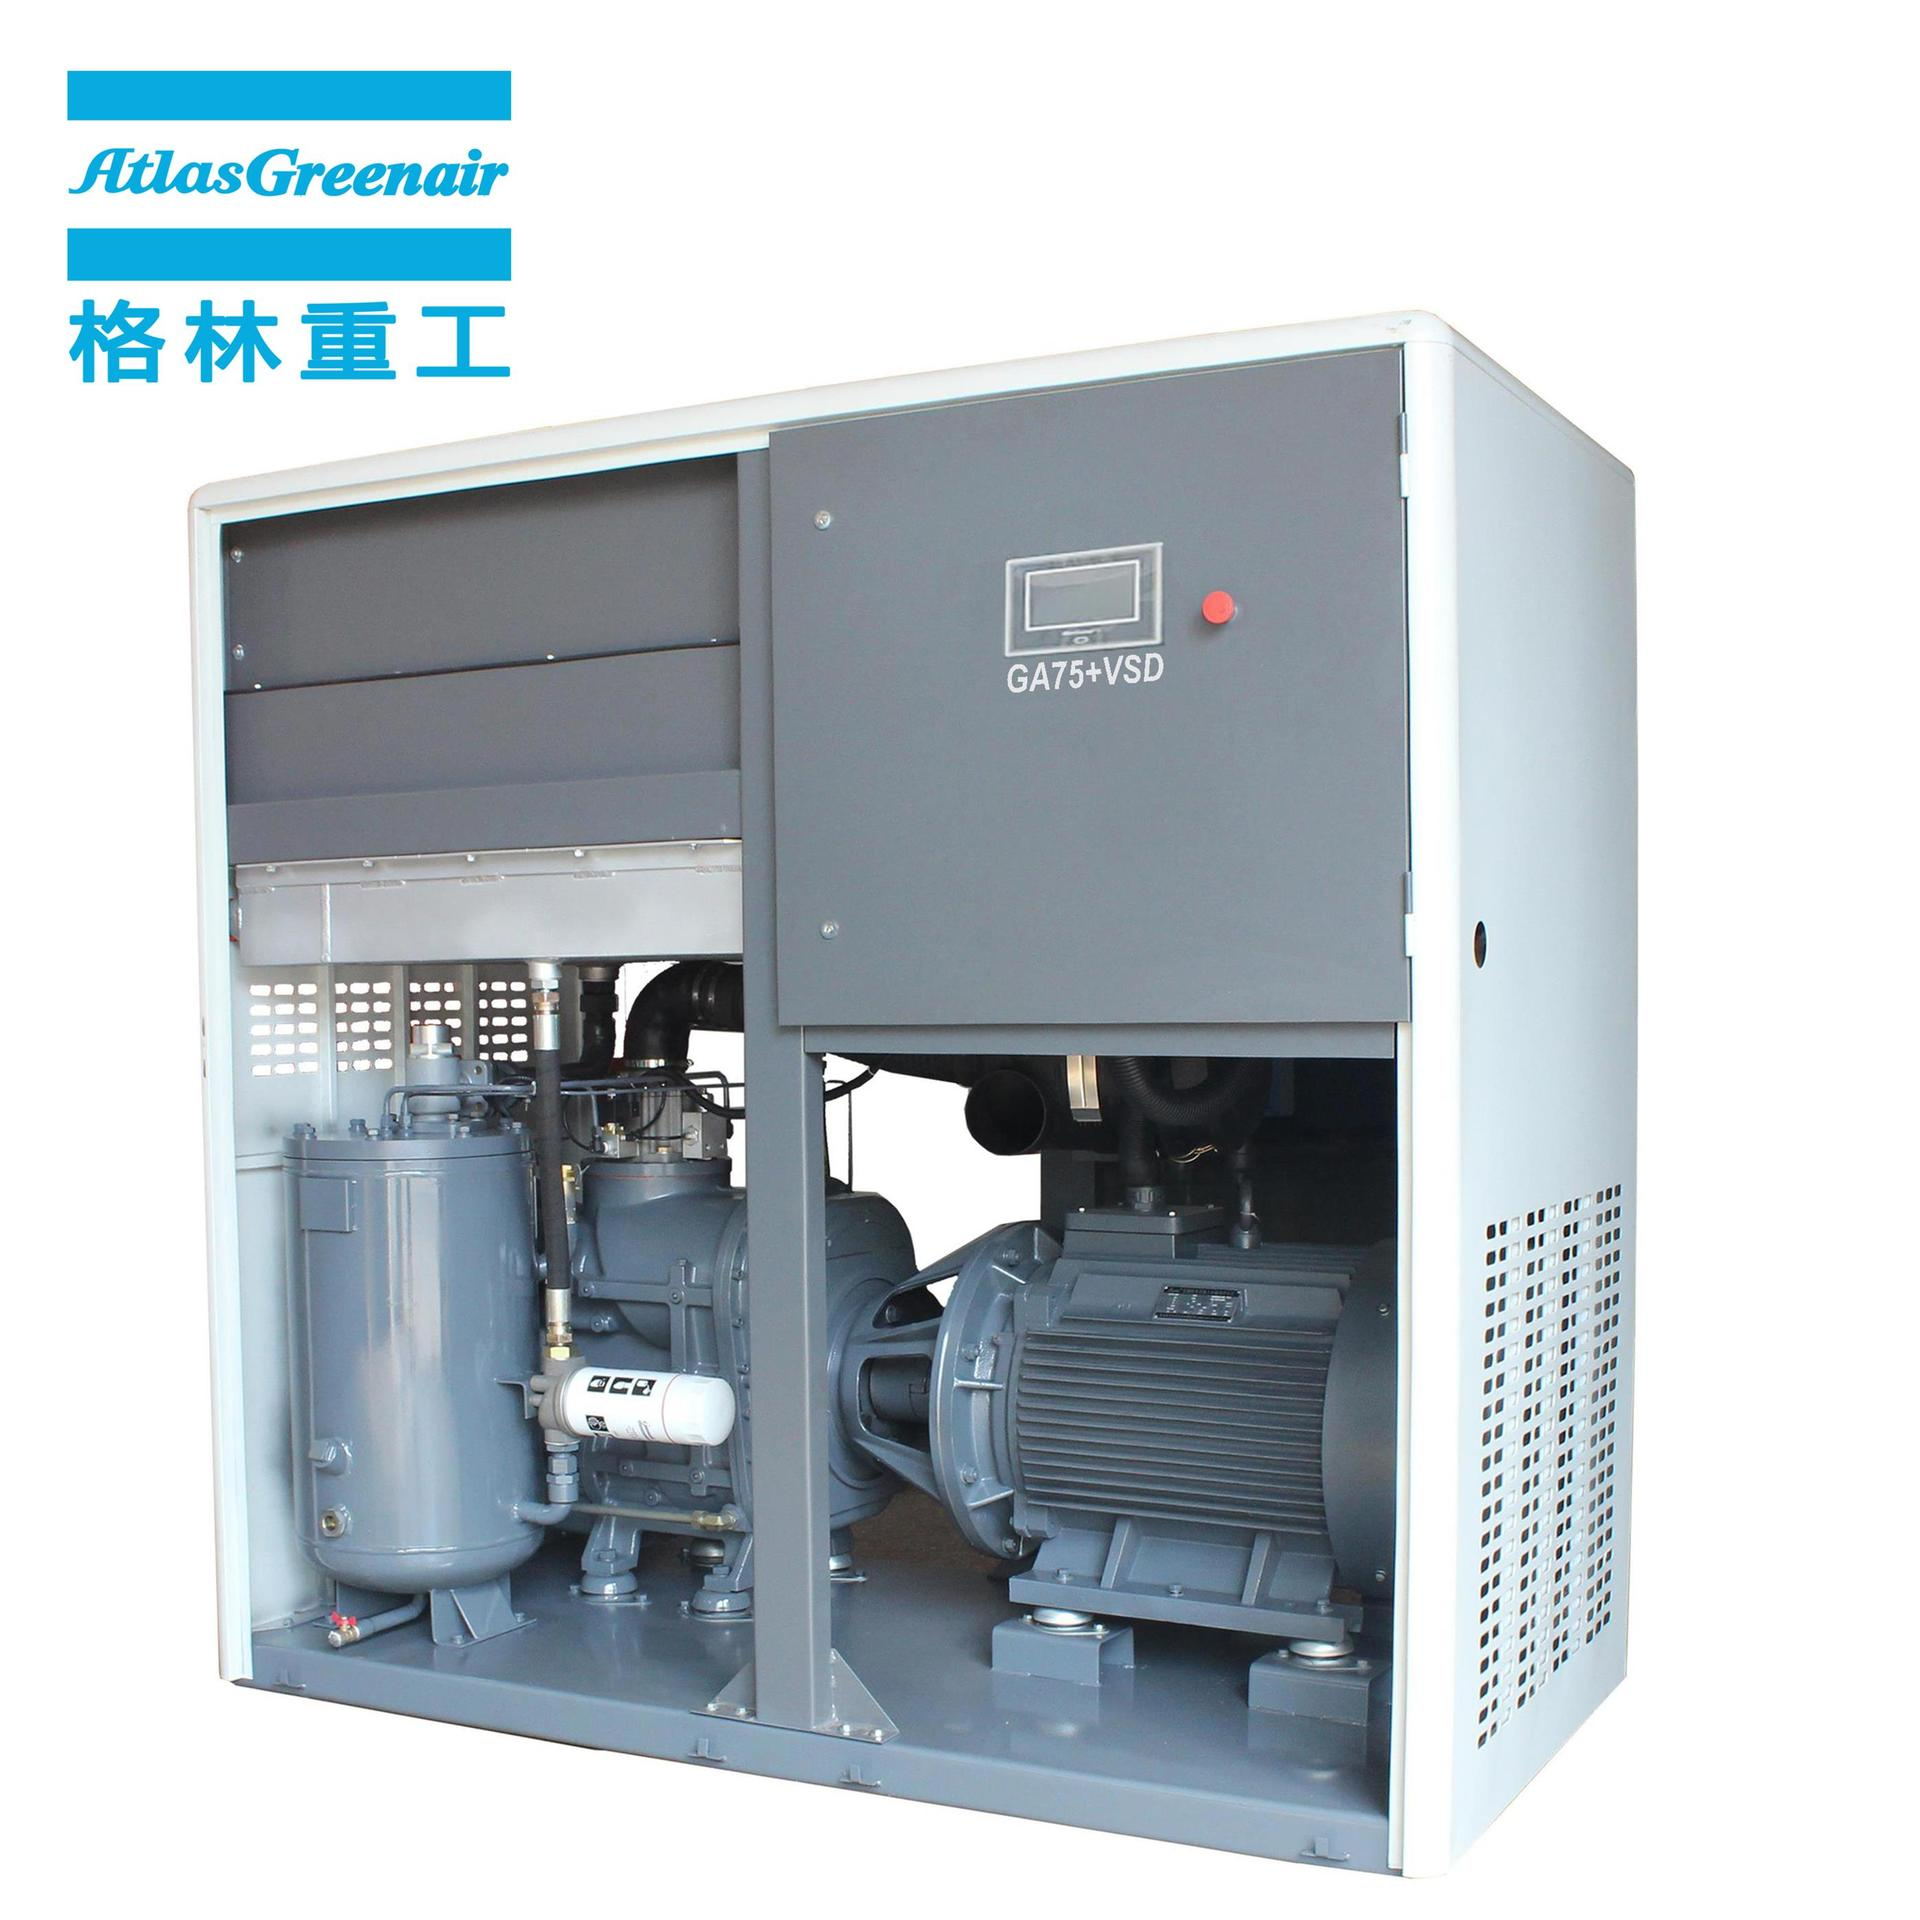 GA75+VSD 75kW Two Stage Air End Variable Speed Energy Saving Screw Air Compressor